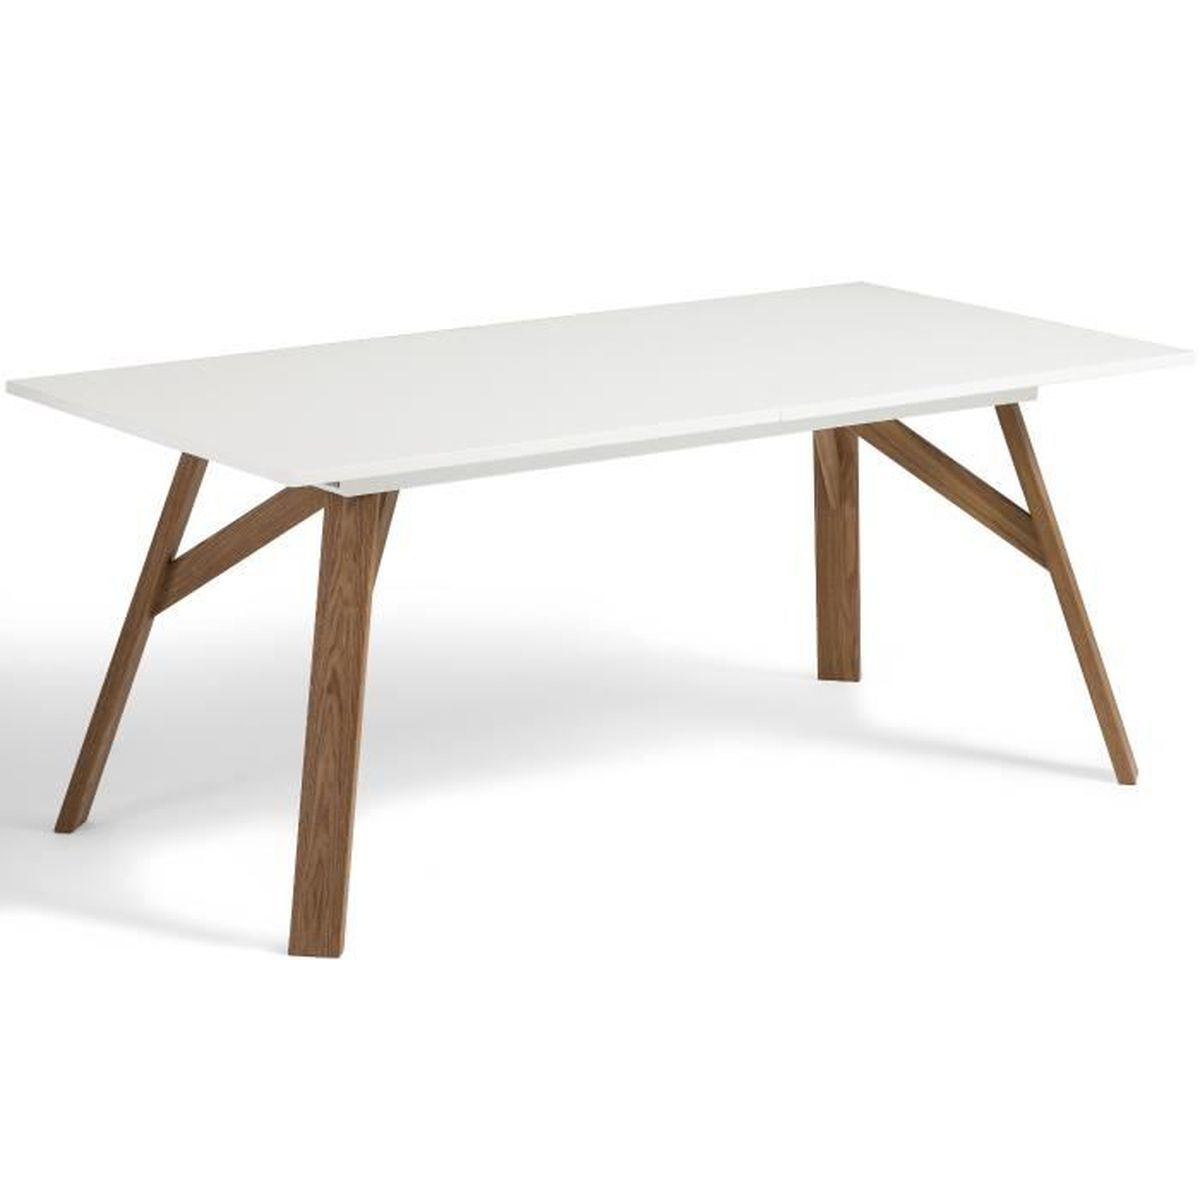 No l table extensible design table et chaises for Table ronde extensible style scandinave